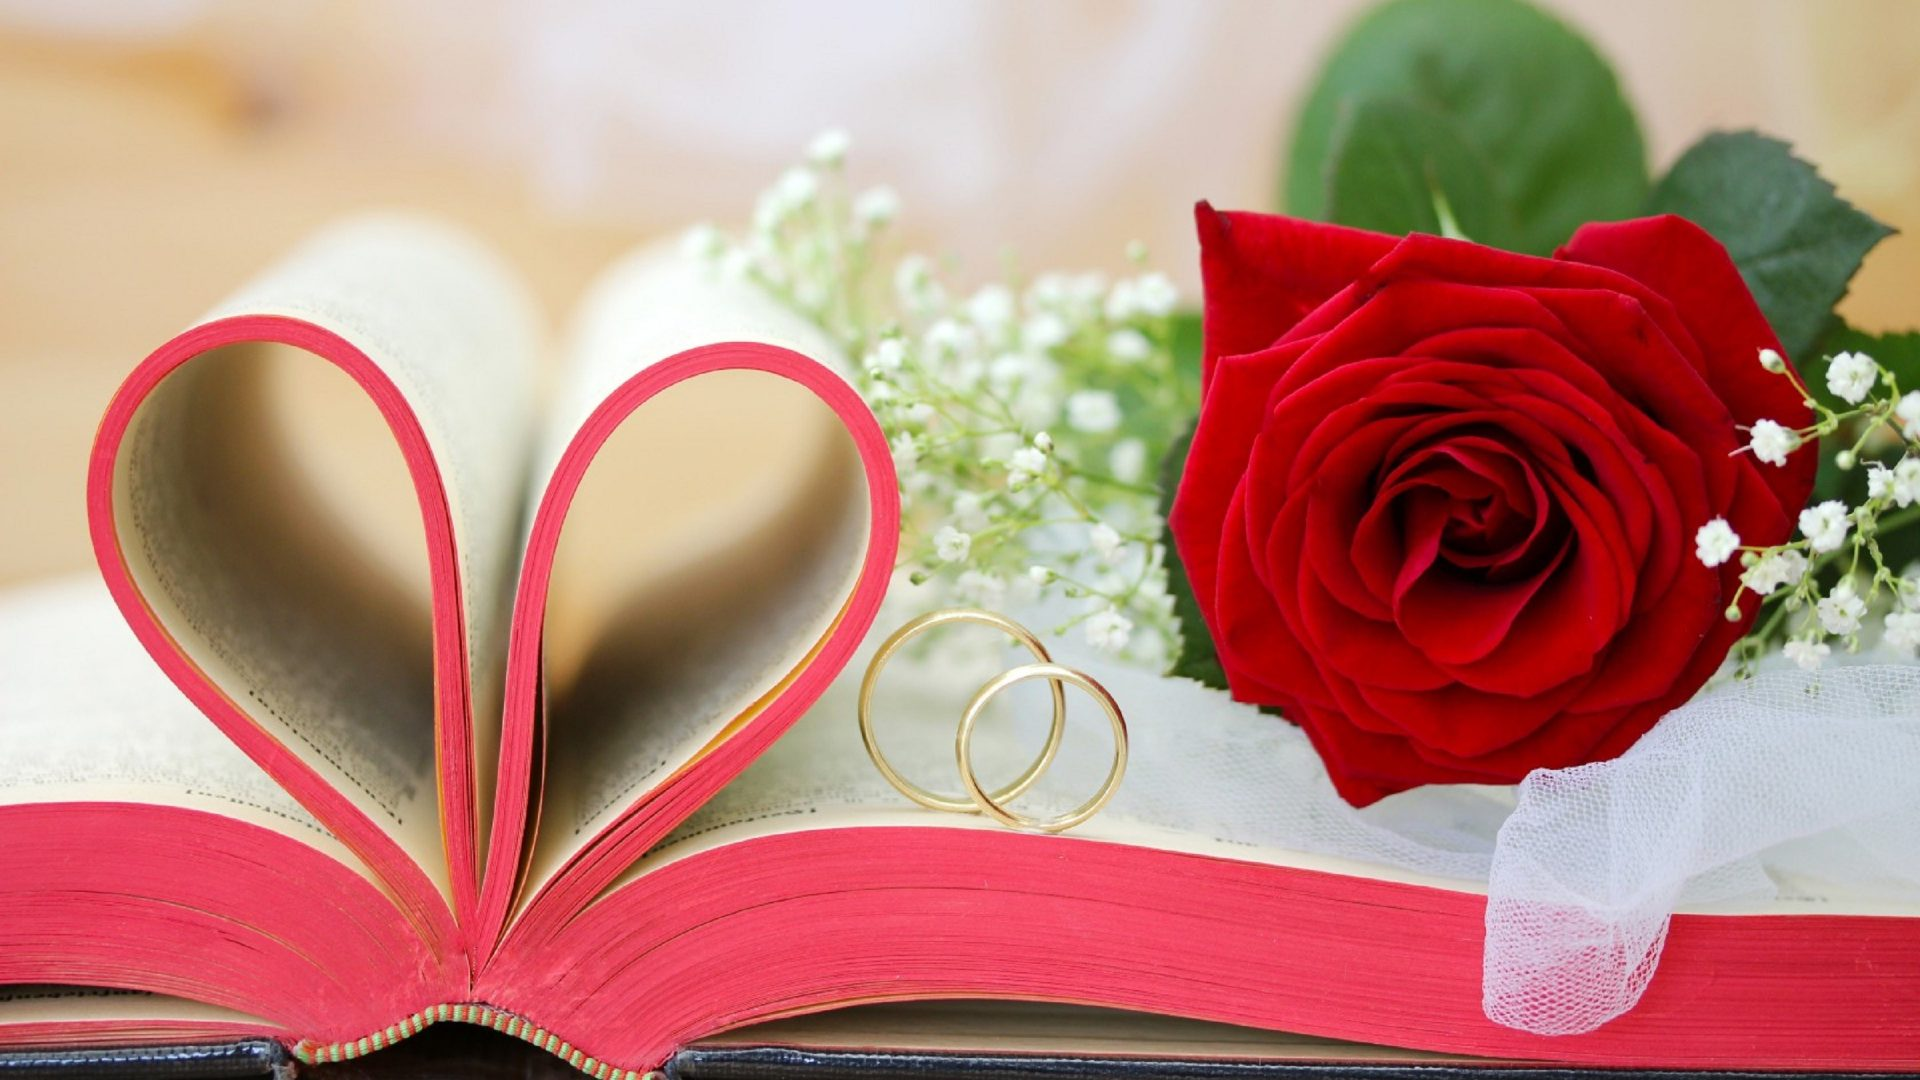 Book-Tag-Roses-Love-Still-Beauty-Heart-Colors-Lovely-Valentine-Seasons-Day-Rings-Creative-February-wallpaper-wpc9003137